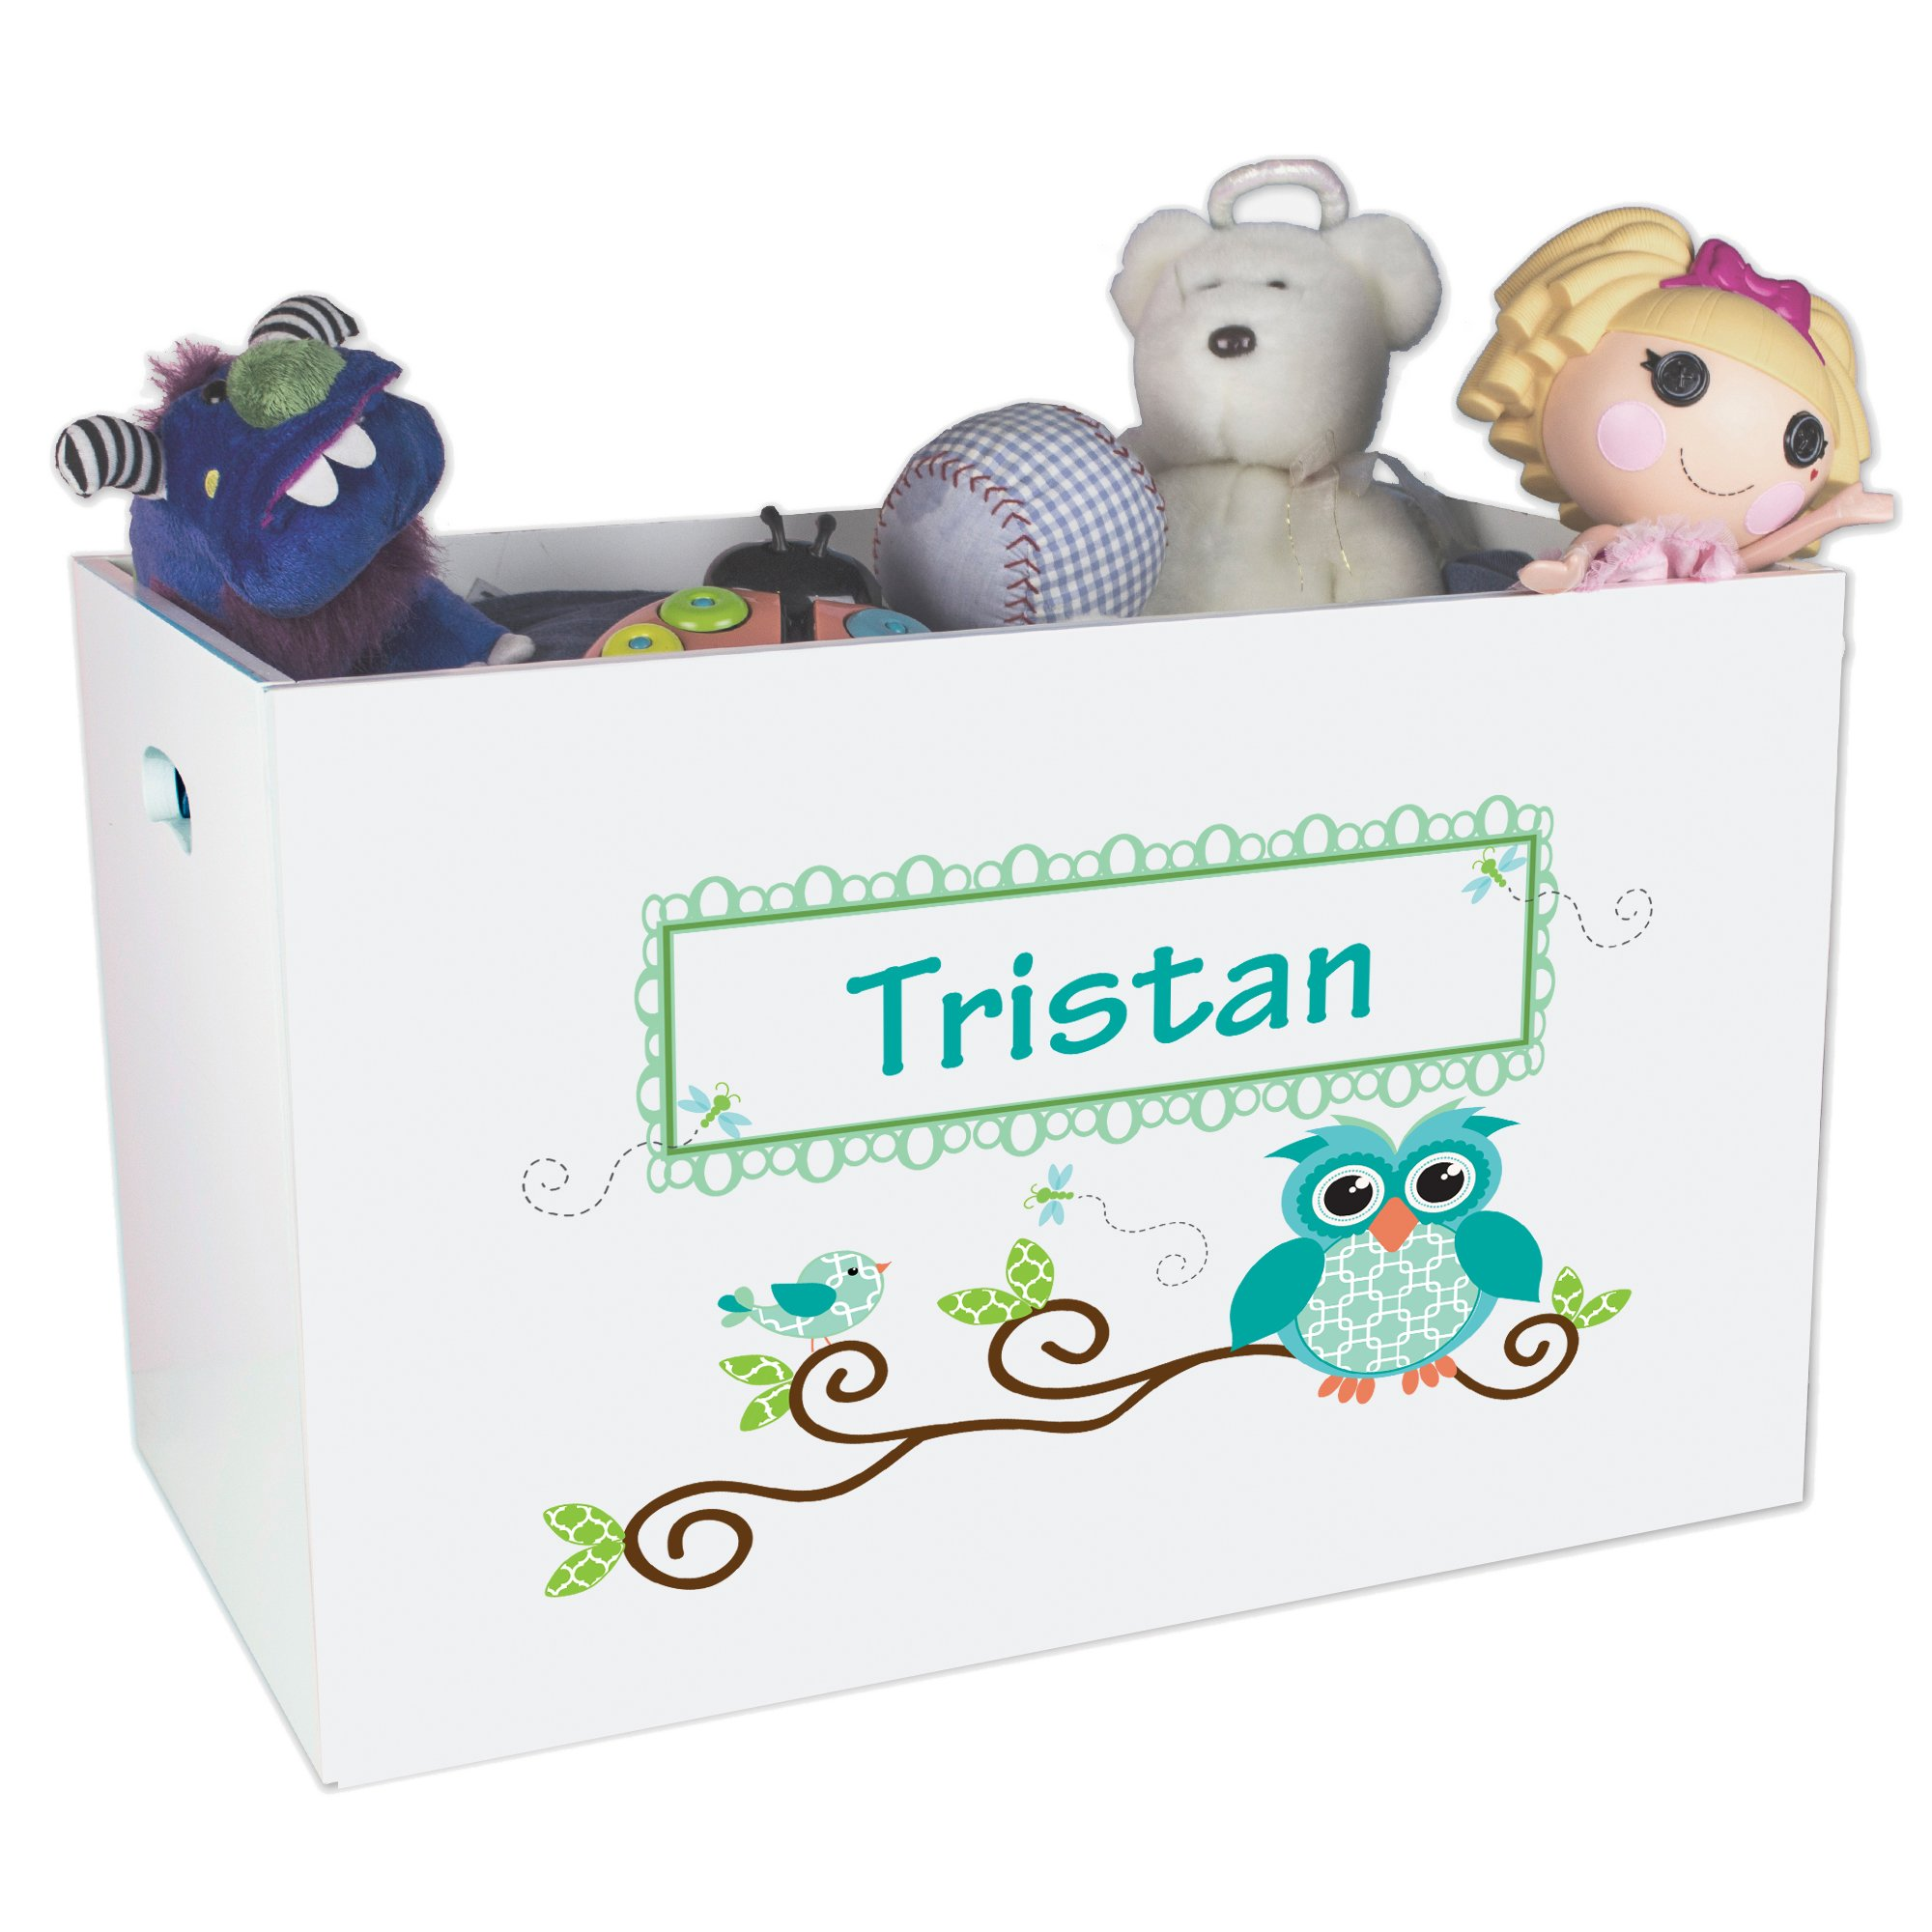 Personalized Gingham Owl Childrens Nursery White Open Toy Box